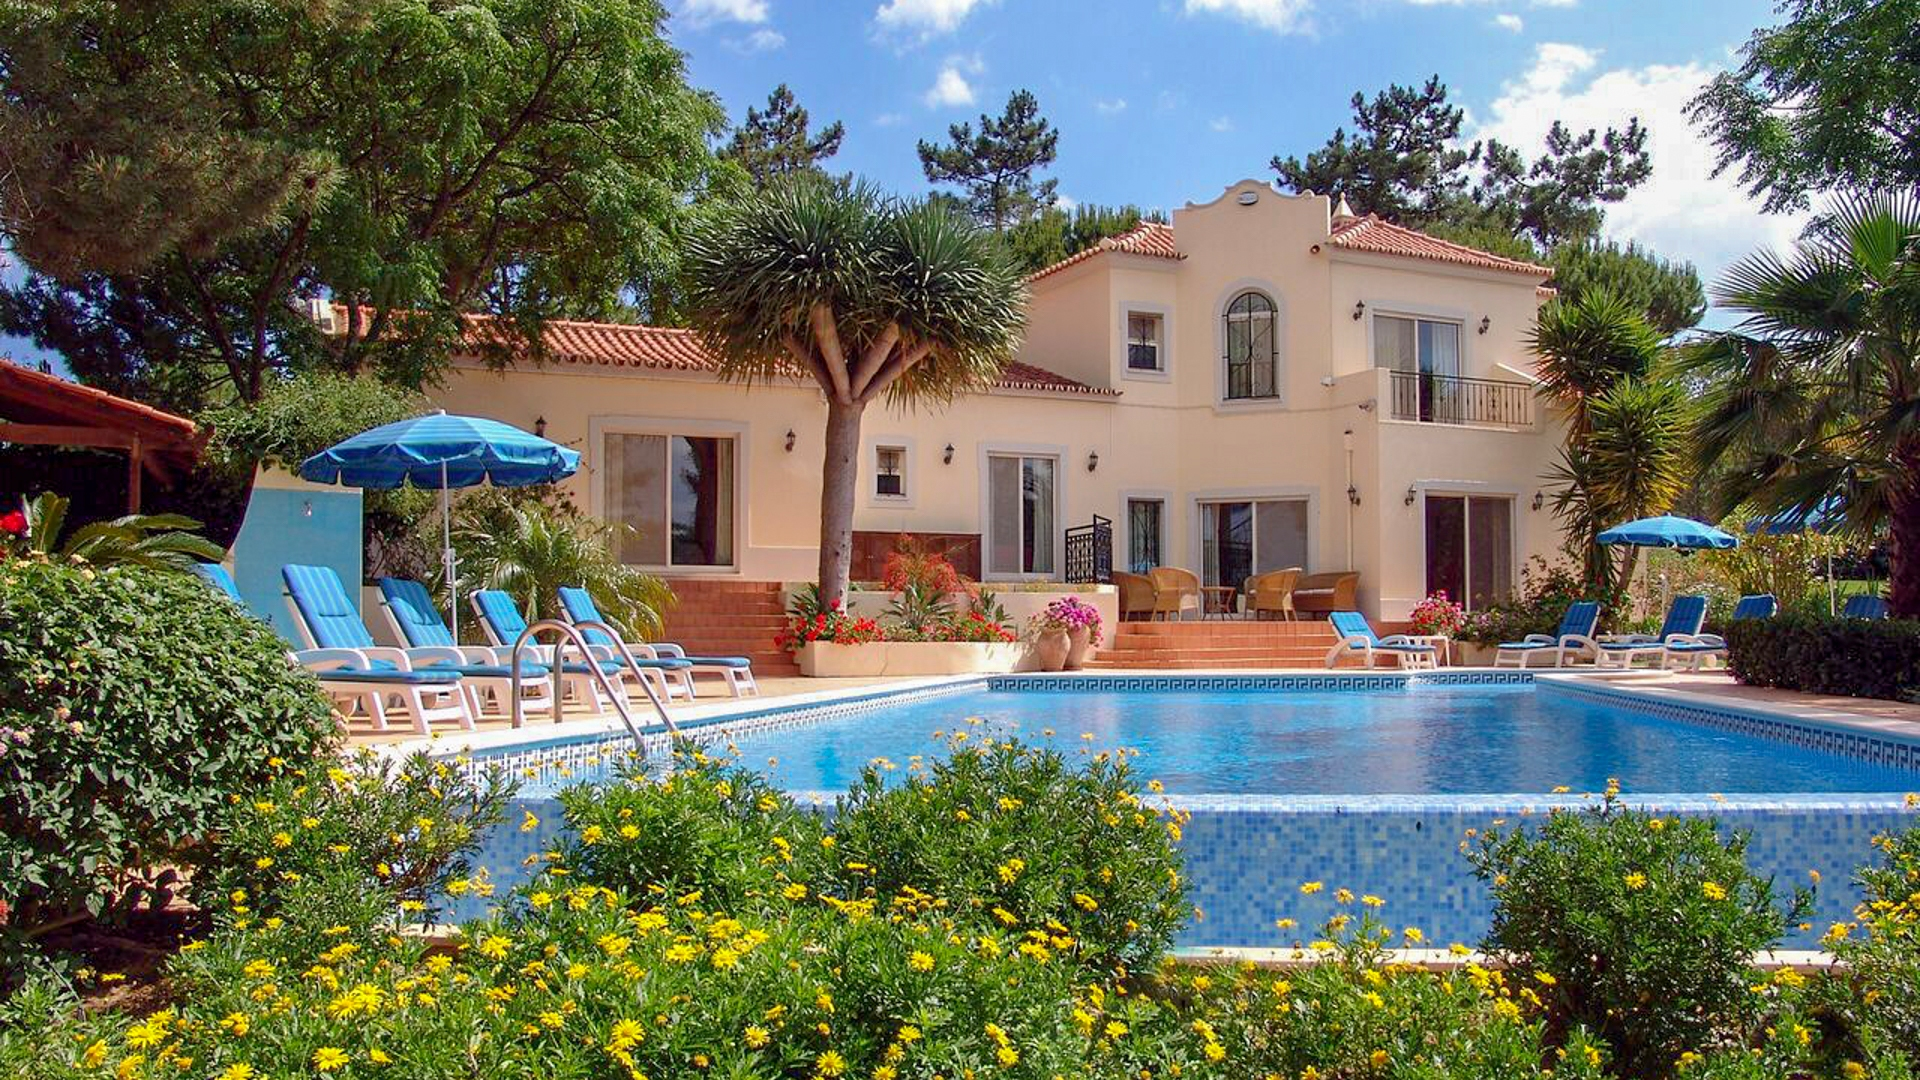 5 Bedroom Villa in quiet location in Ludo, near Quinta do Lago  | PRB042 5 bedroom villa with heated pool and tennis court, near Quinta do Lago. It is located in a quiet area, close to golf courses and beaches.